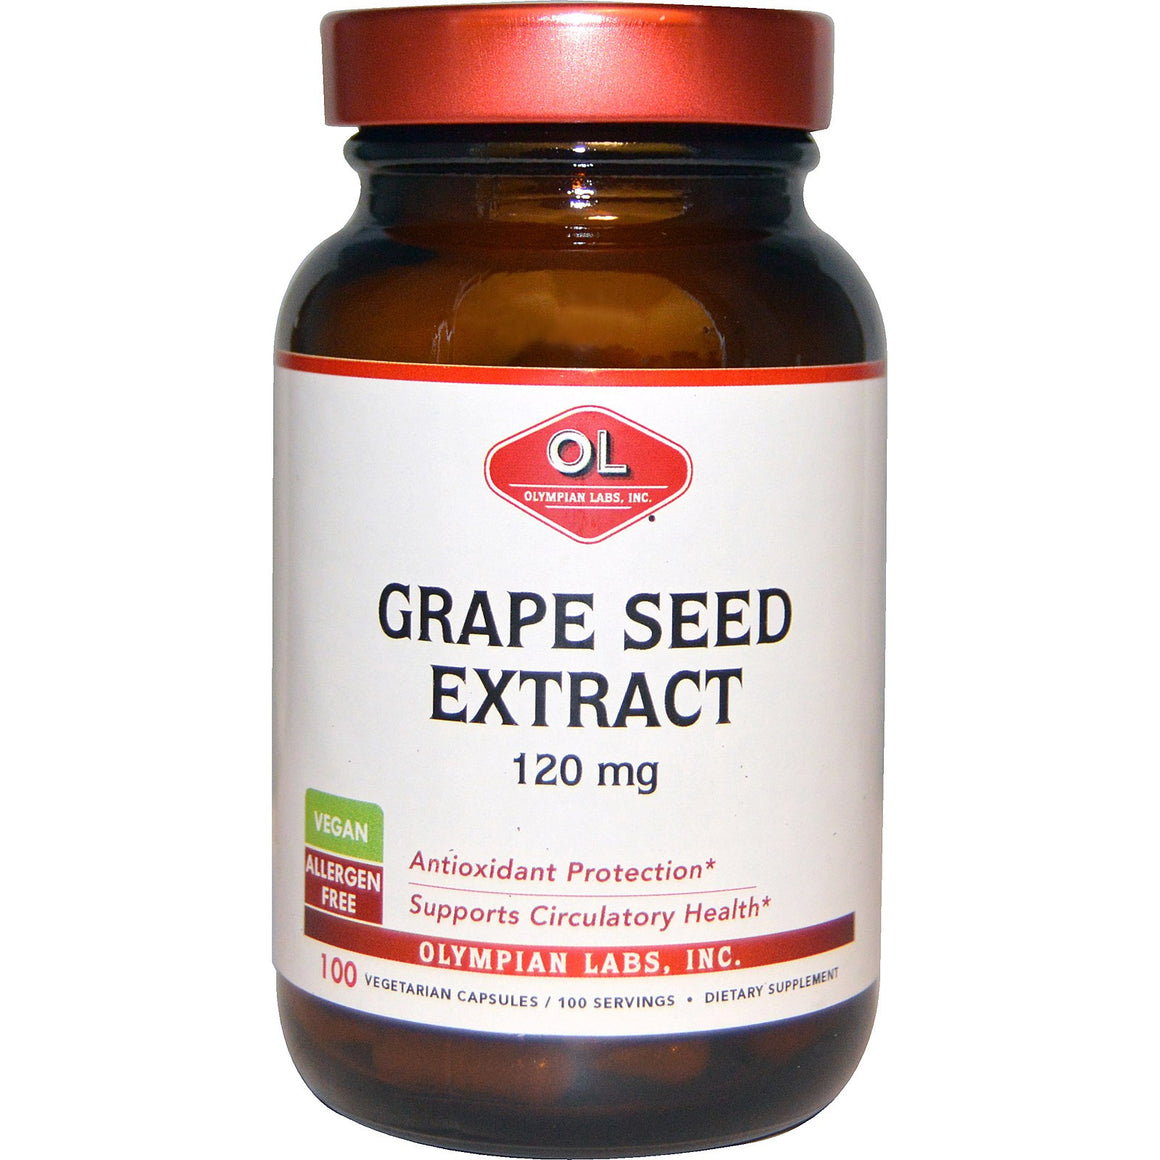 Olympian Labs Grapeseed Extract